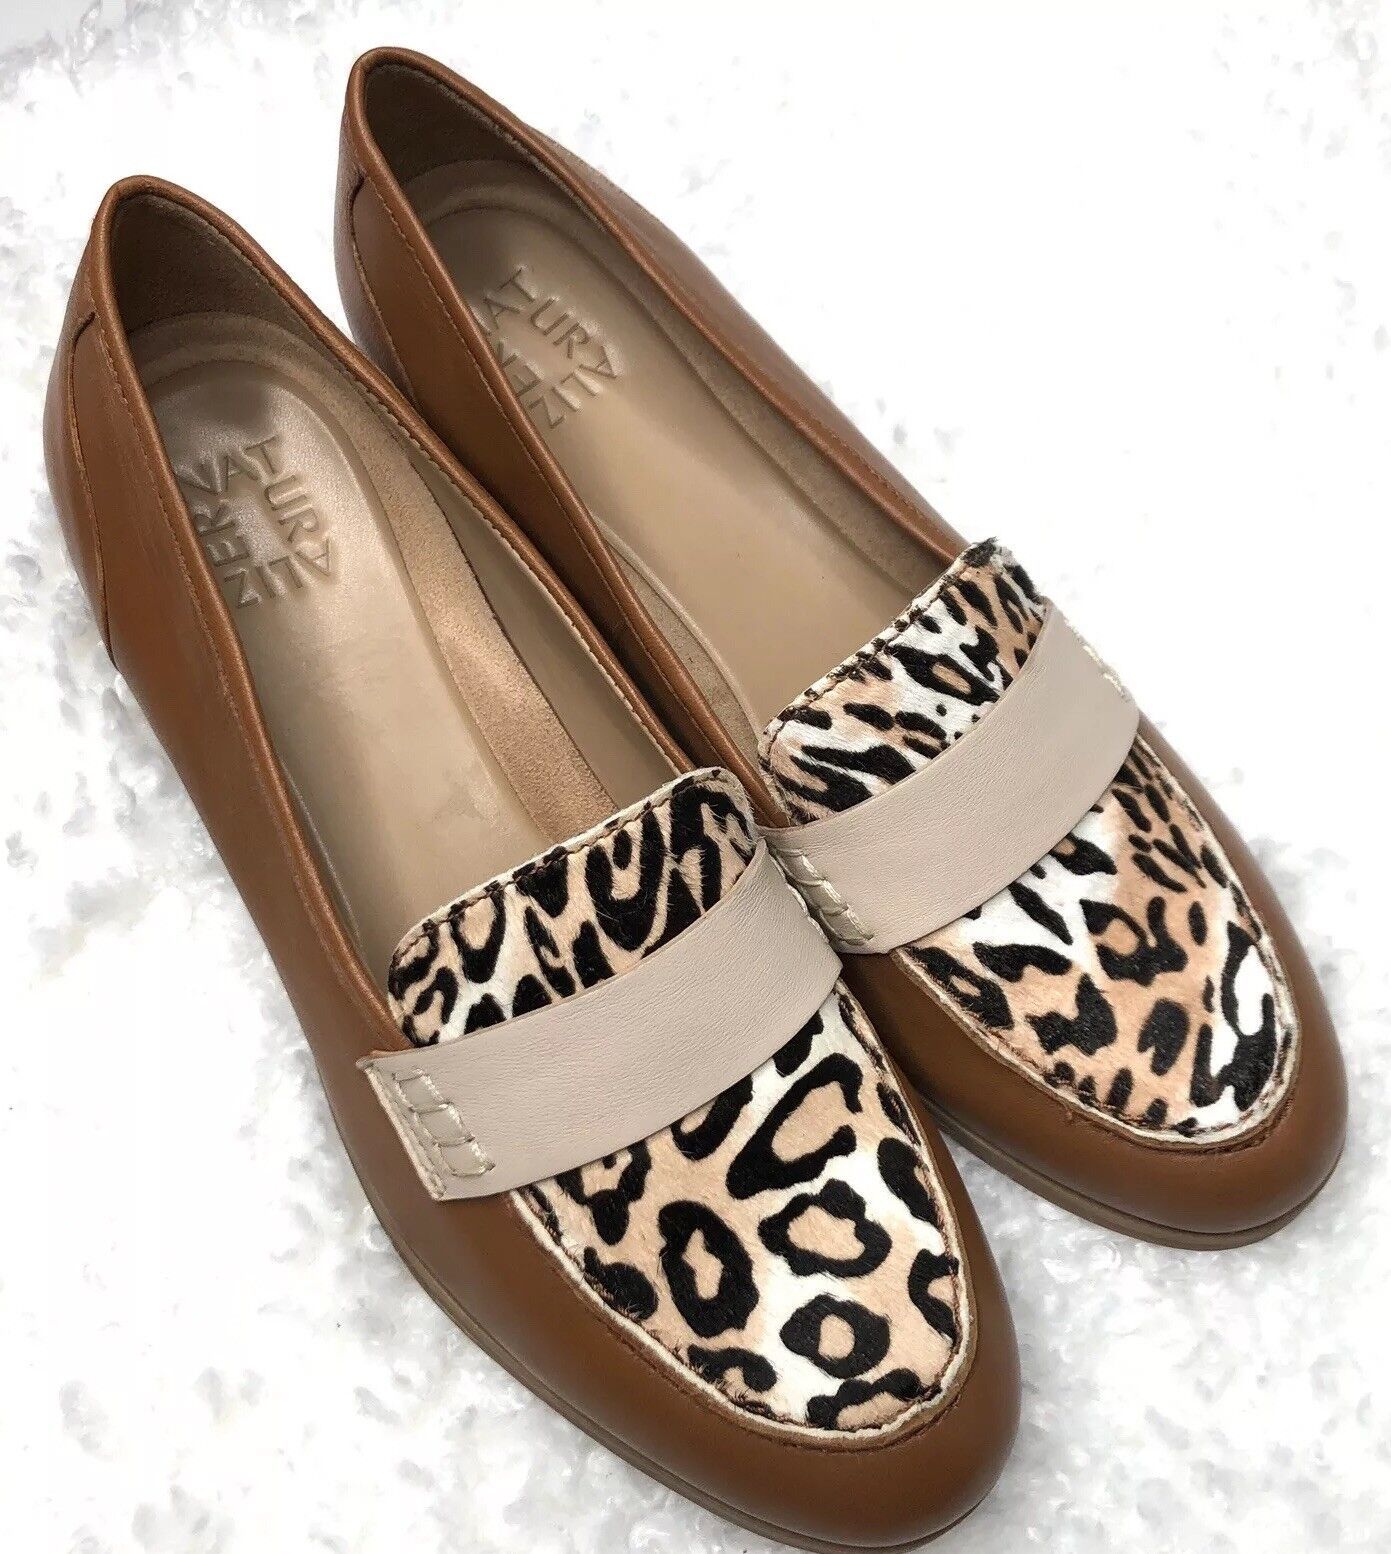 Women's Naturalizer Veronica Loafers Flats shoes SZ 7.5M Camelot Animal Print